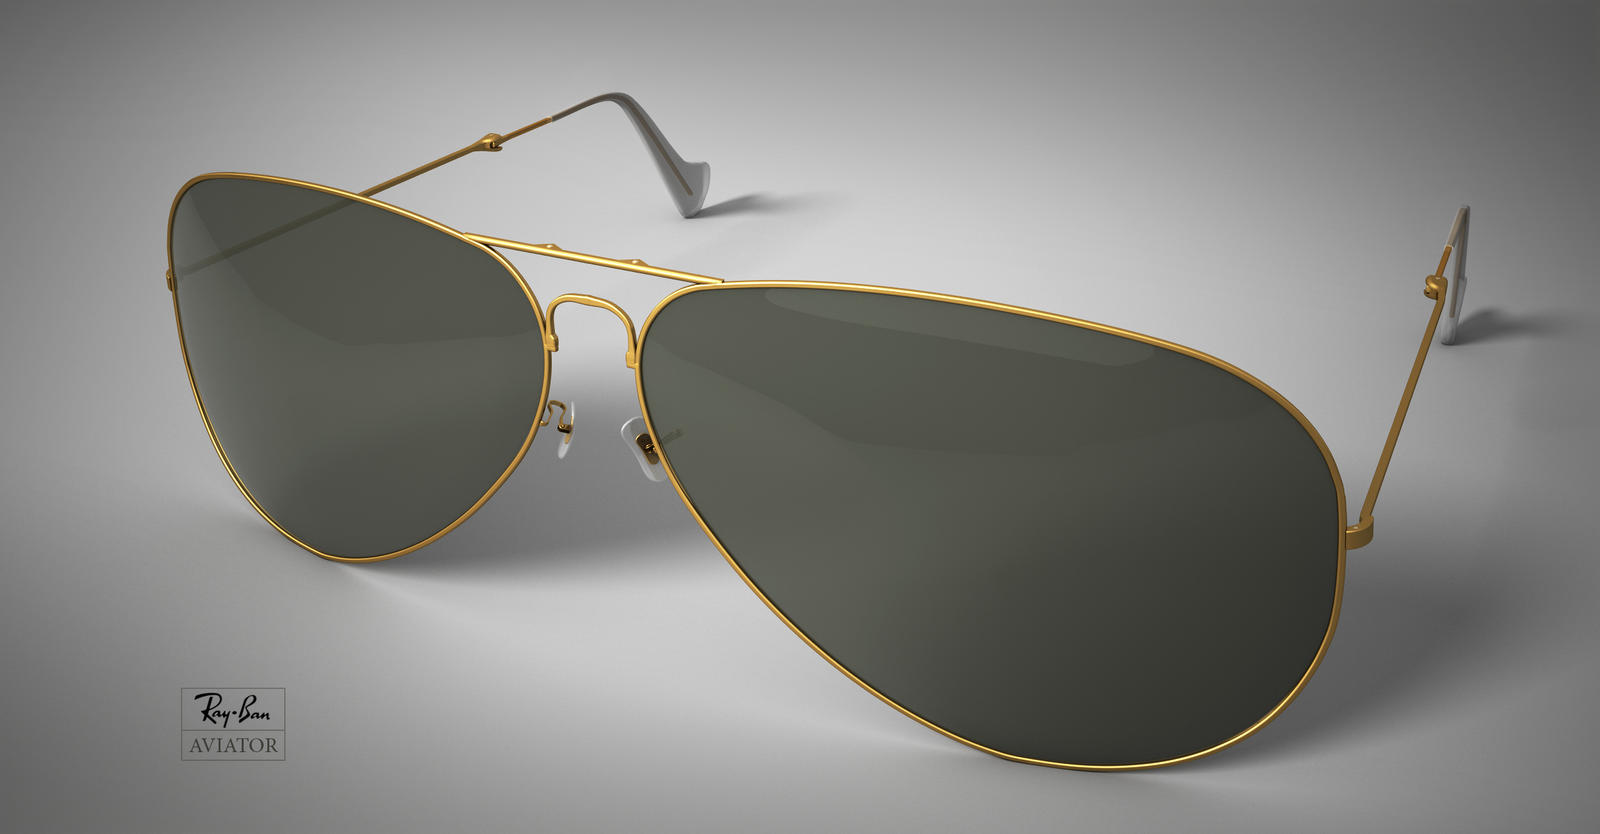 Ray Ban Aviator Wallpaper | La Confédération Nationale du Logement